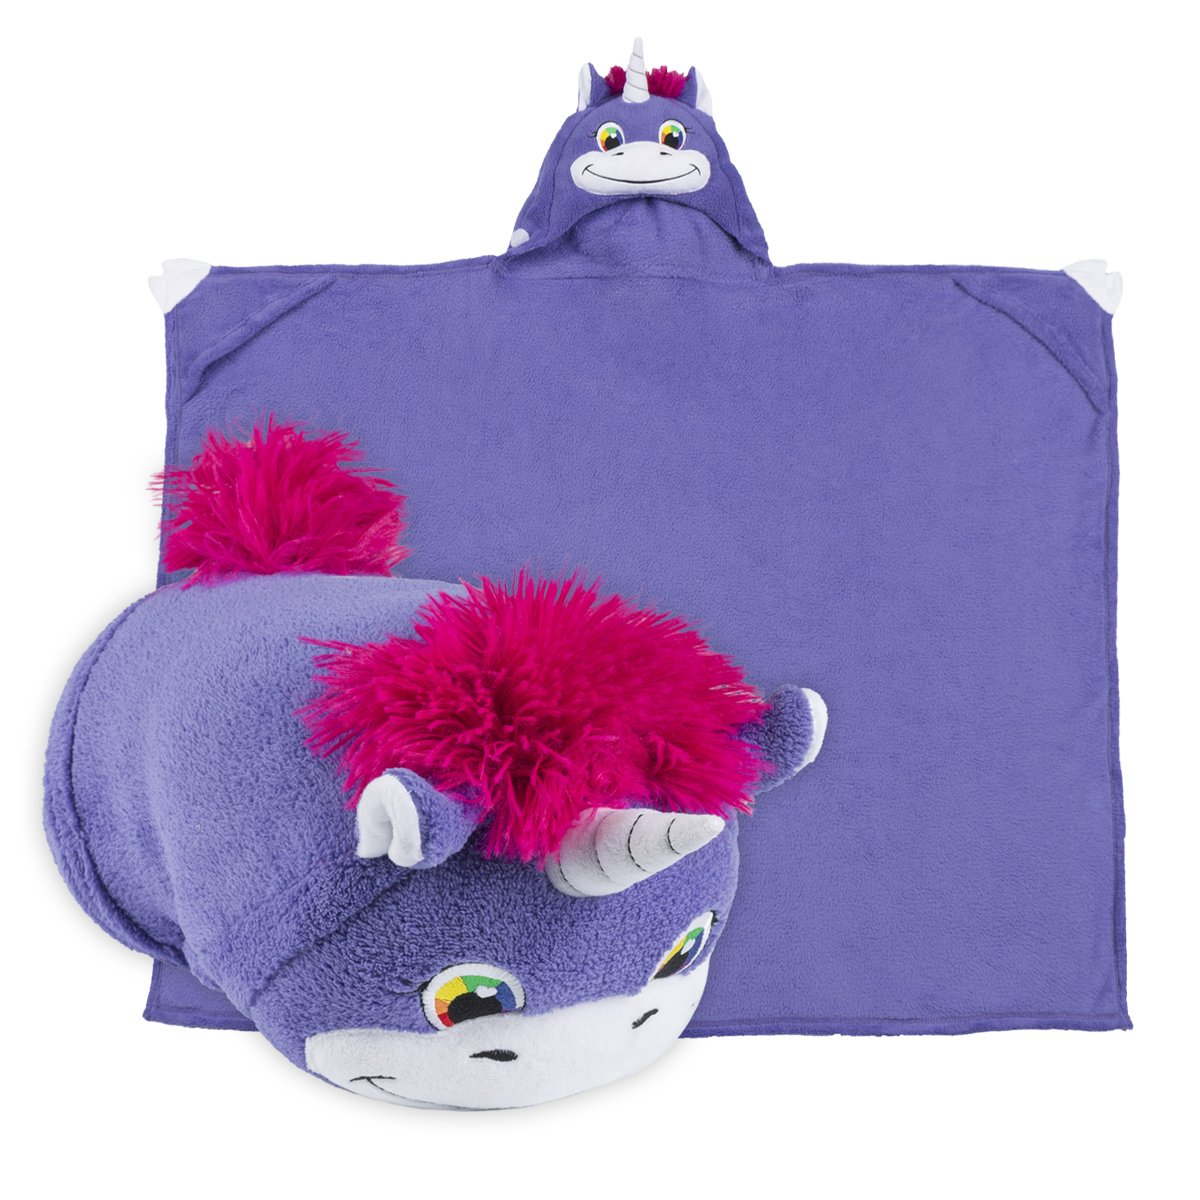 Comfy Critters Stuffed Animal Blanket – Unicorn – Kids huggable pillow and blanket perfect for pretend play, travel, nap time.